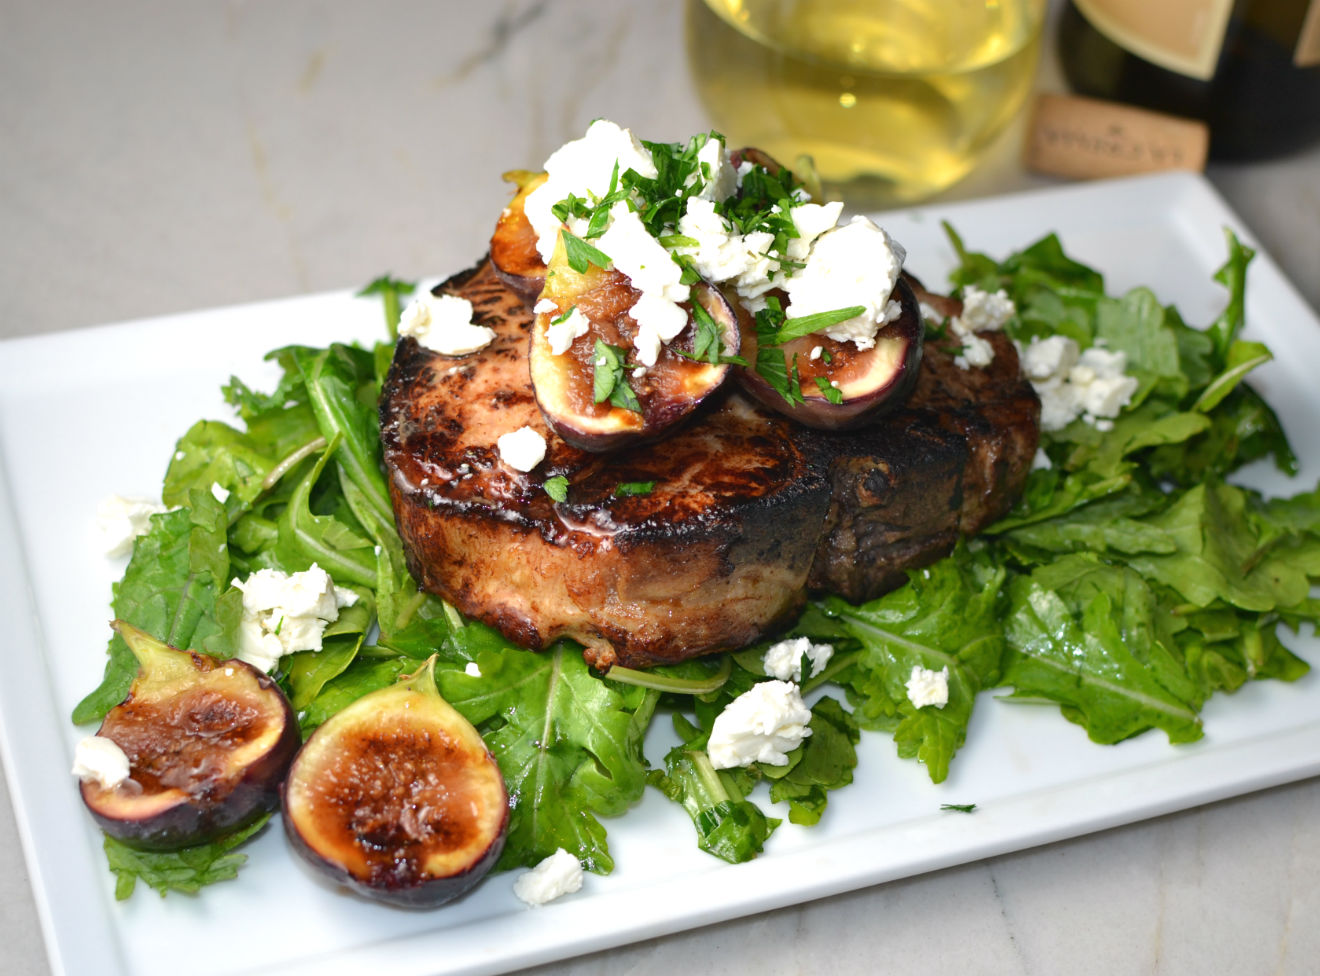 Pork Chop with Feta and Figs